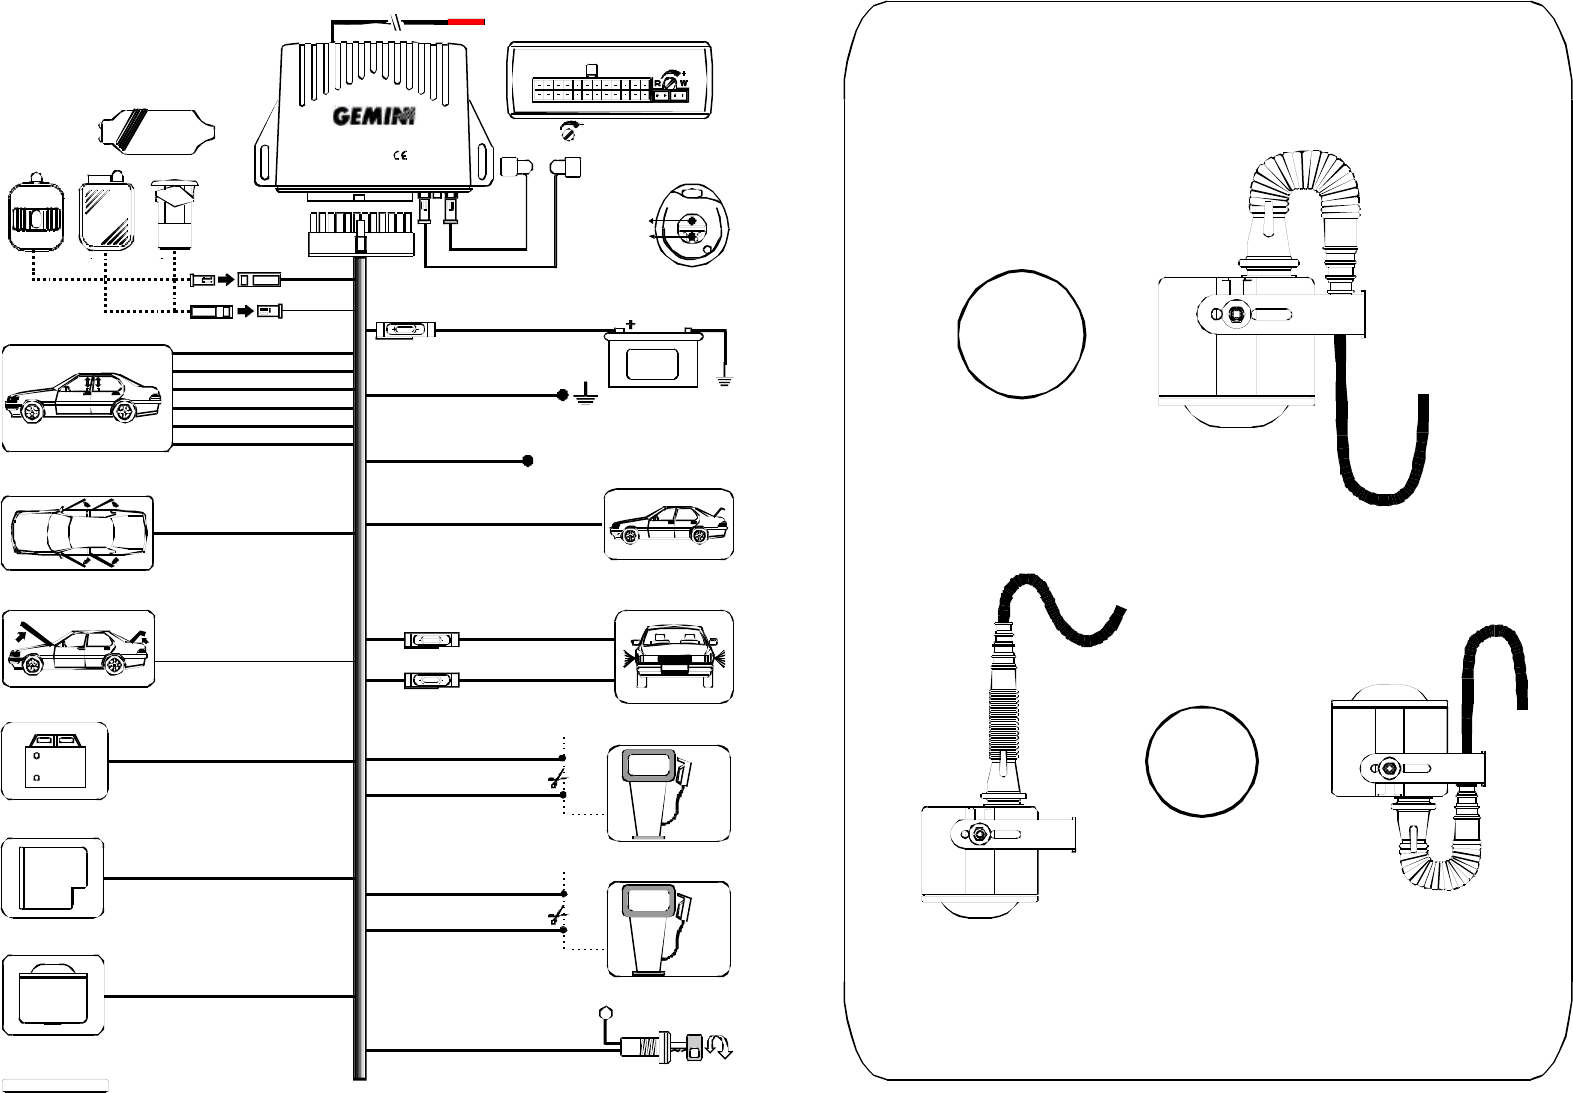 Quick Car Wiring Diagram additionally How To Put Chain On Craftsman Chainsaw likewise Schematic Diagram Of Relay together with Gemini Alarm System Wiring Diagram as well Mystique Wire Harness. on crutchfield wiring gauge